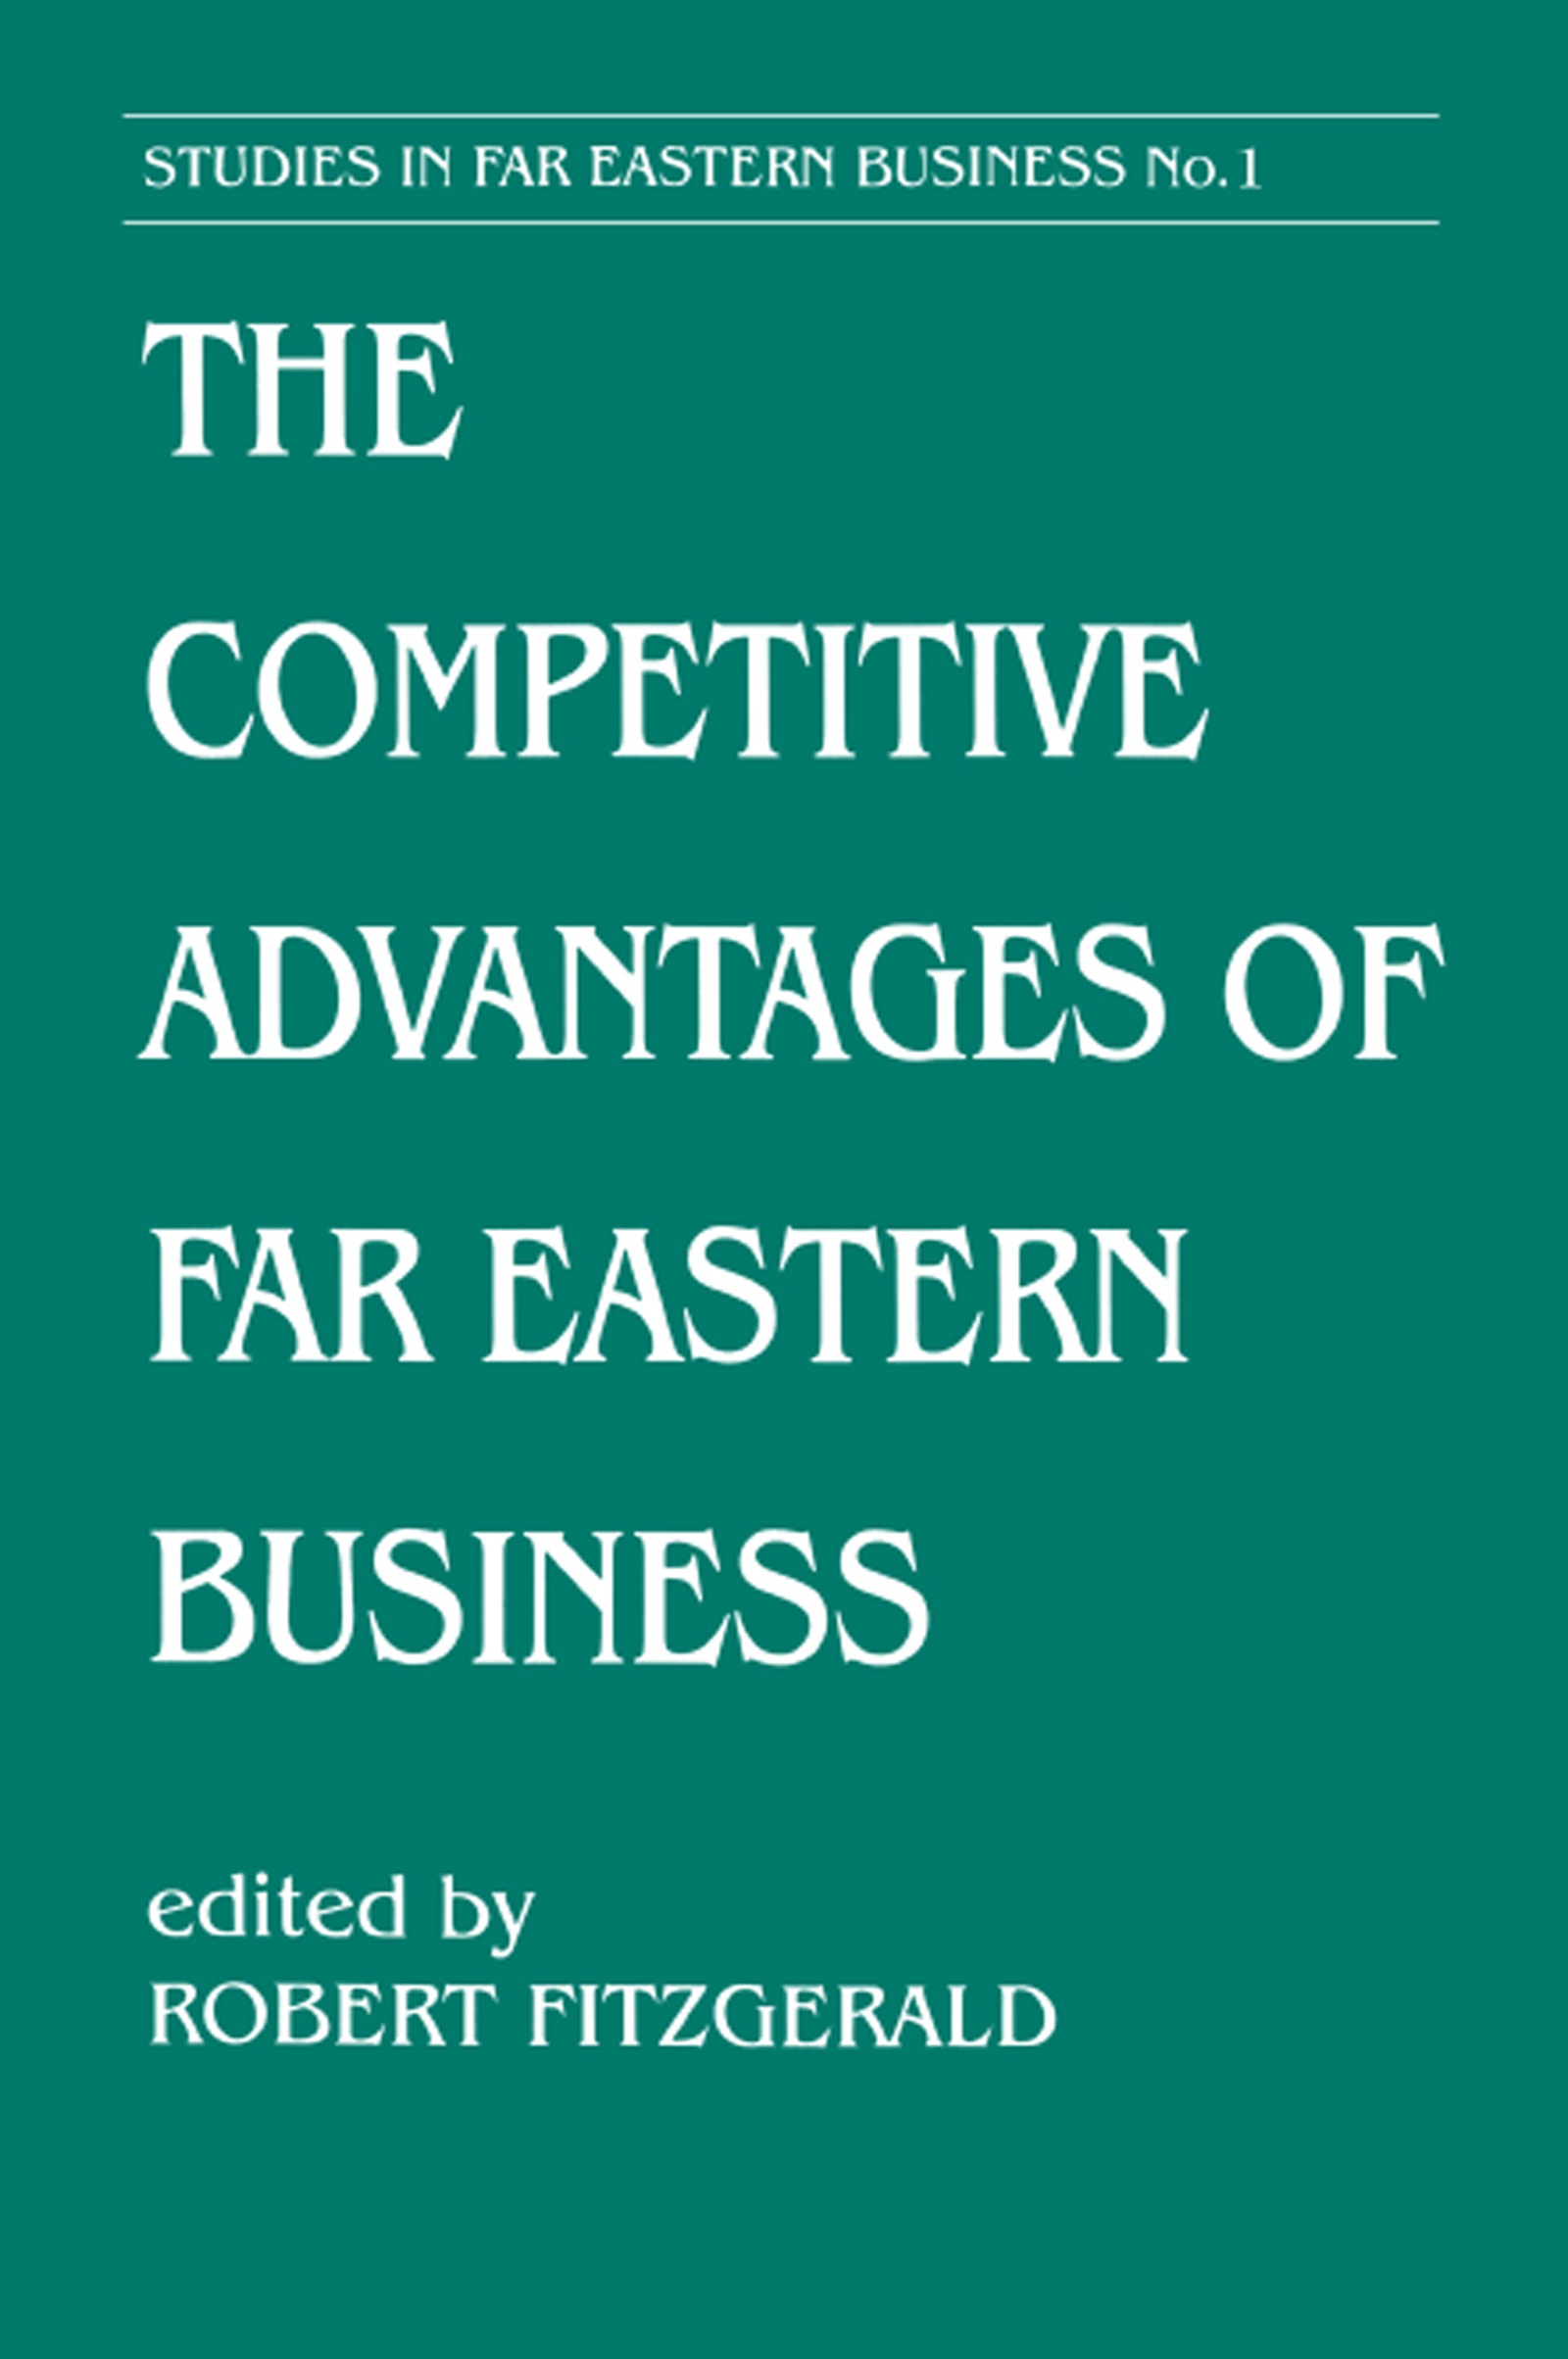 The Competitive Advantages of Far Eastern Business